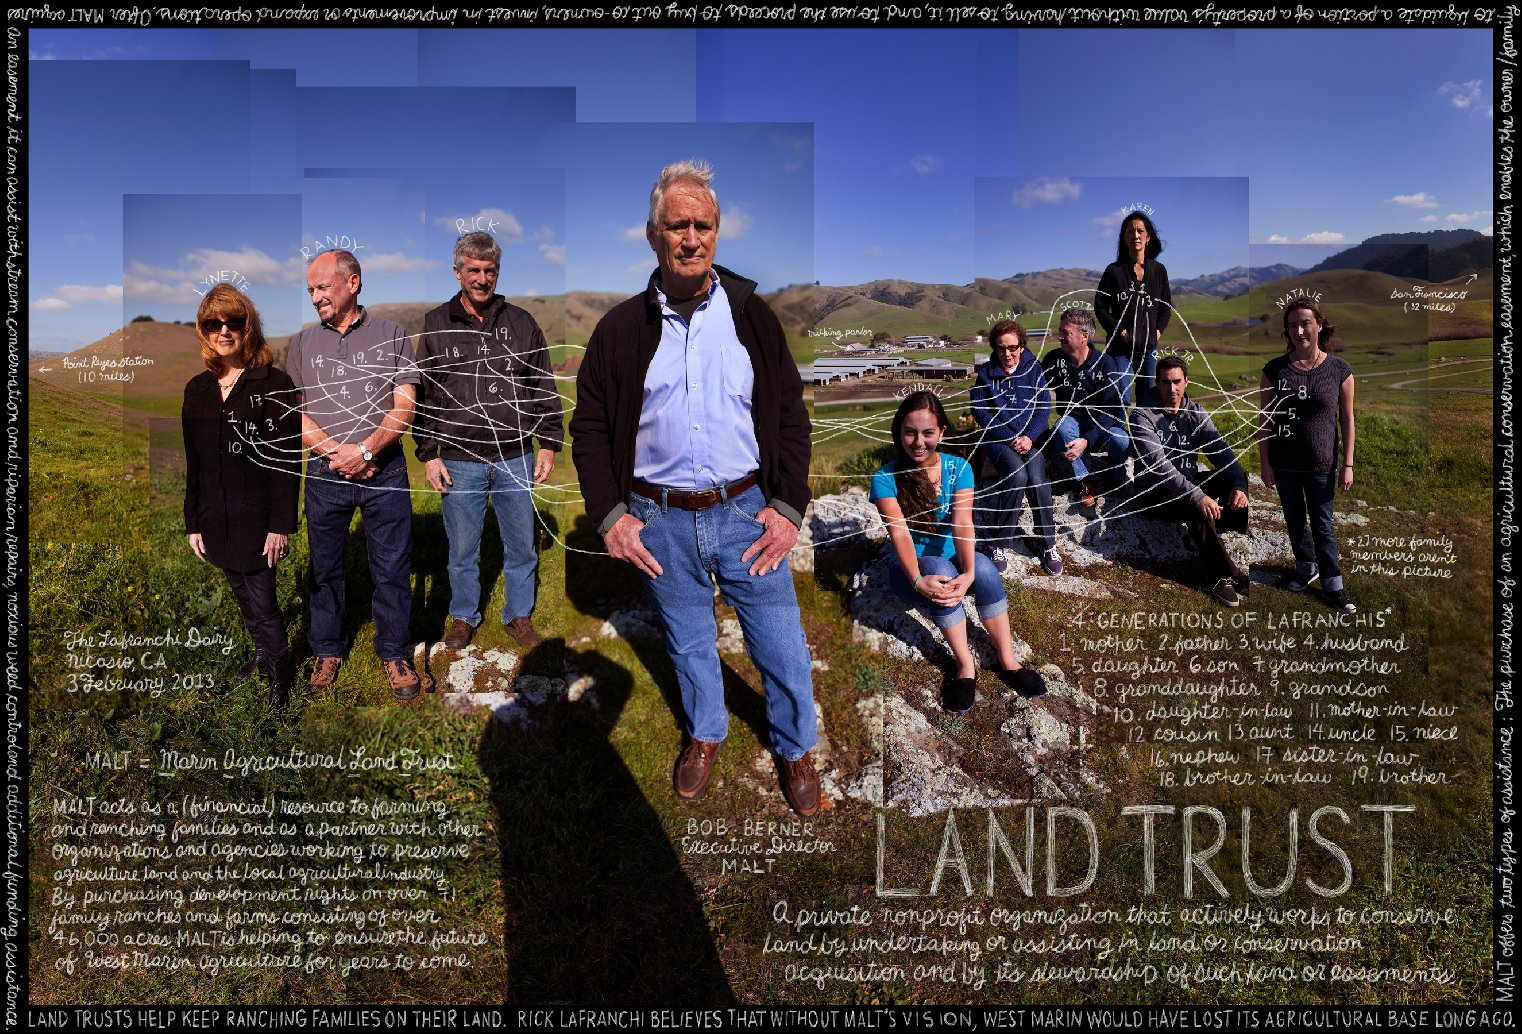 Land Trust artwork